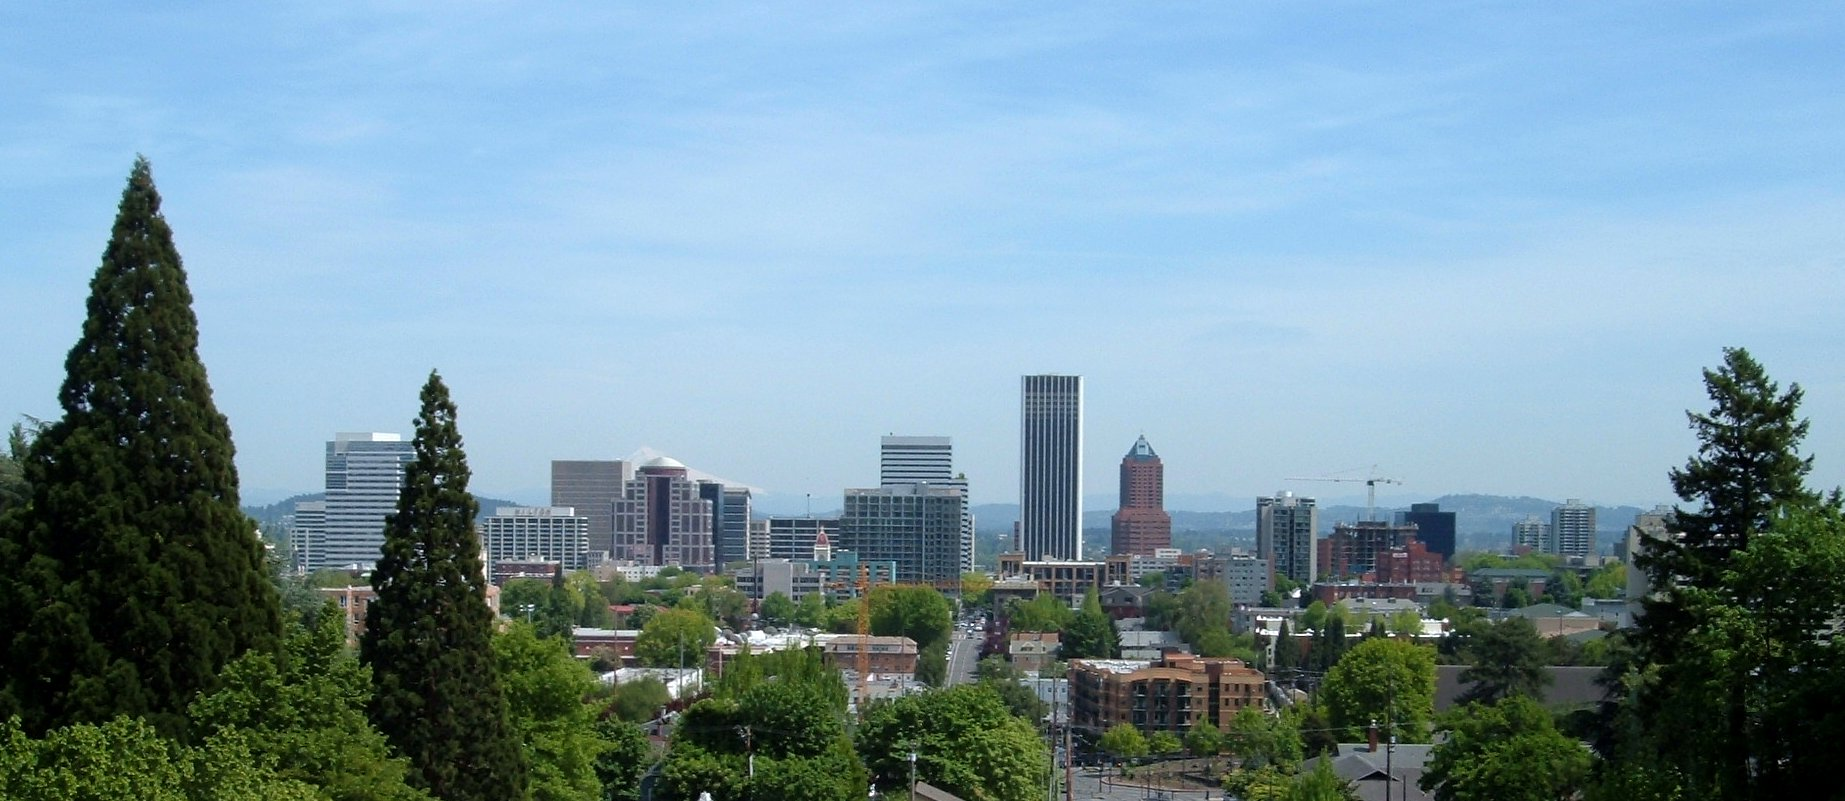 Troy 39 s photos city skylines downtown 12999 portland for Us city skylines photos